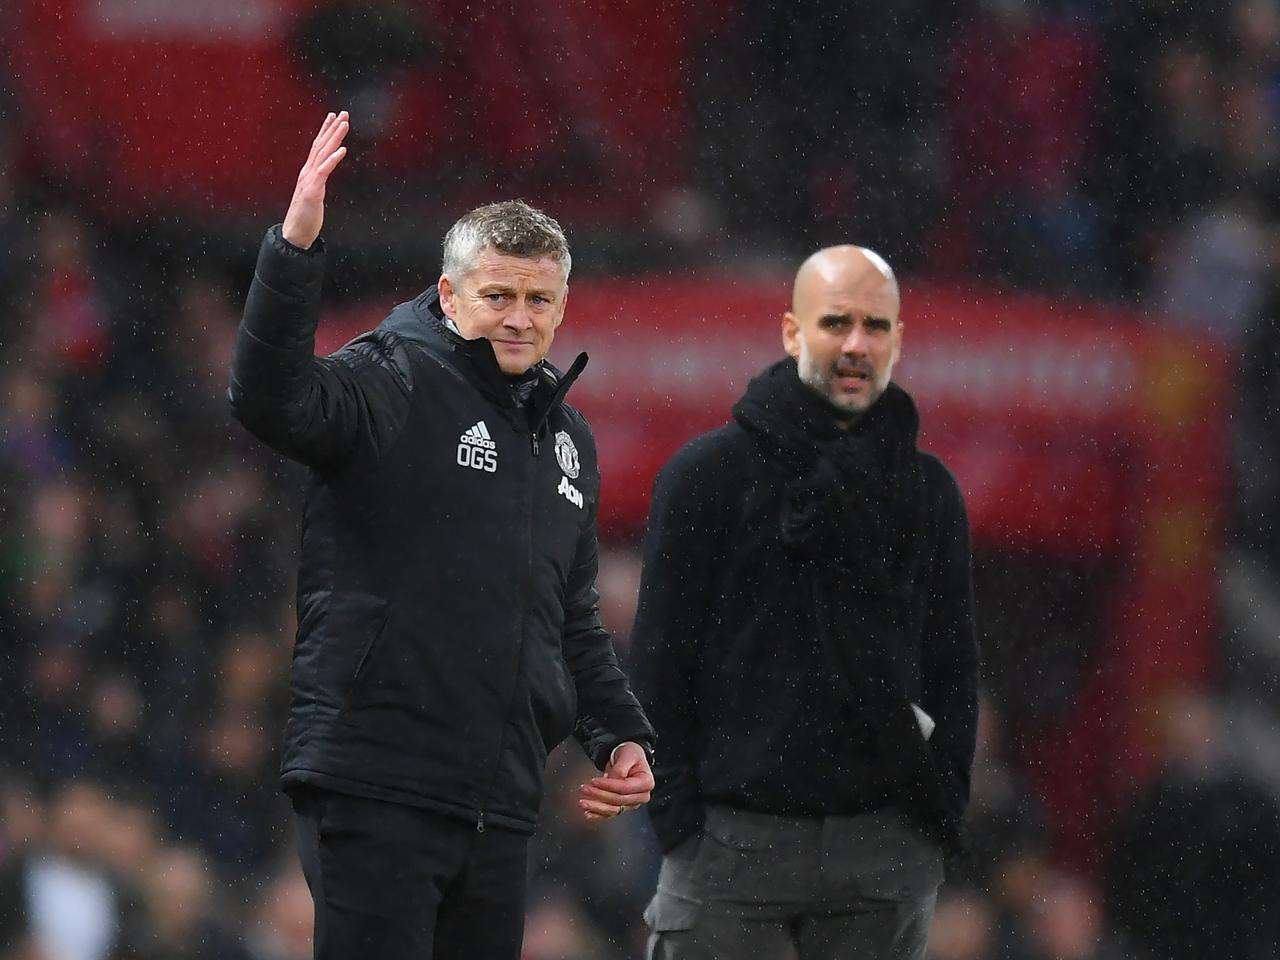 All eyes will be on the Manchester derby this weekend